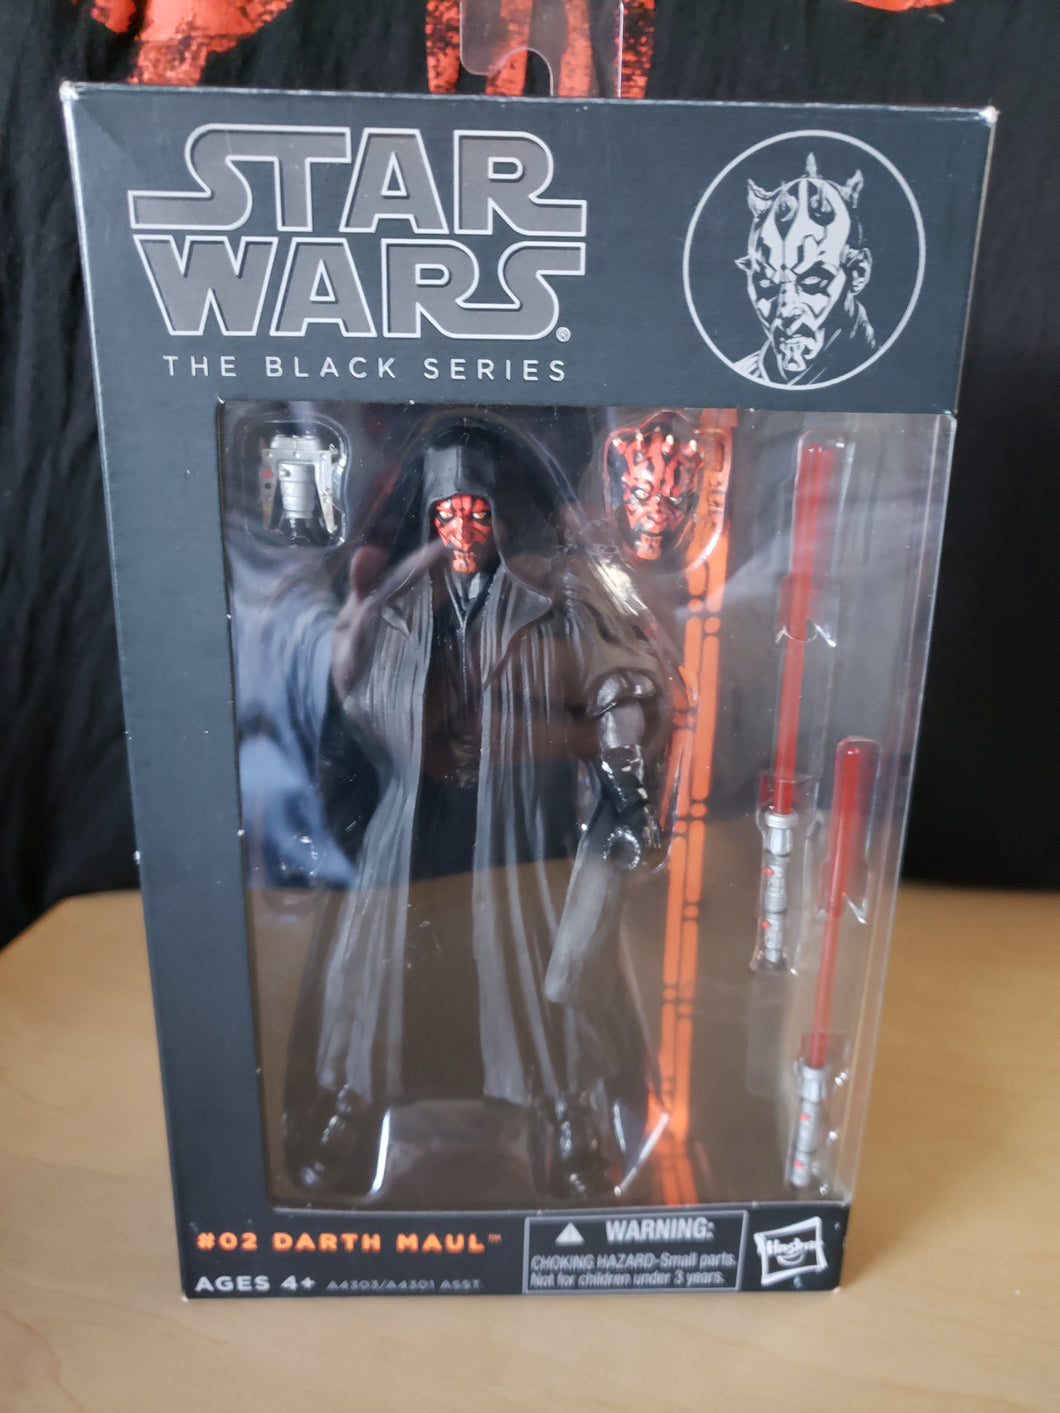 2013 The Black Series (Orange) #02 - Darth Maul (6-inch figure)